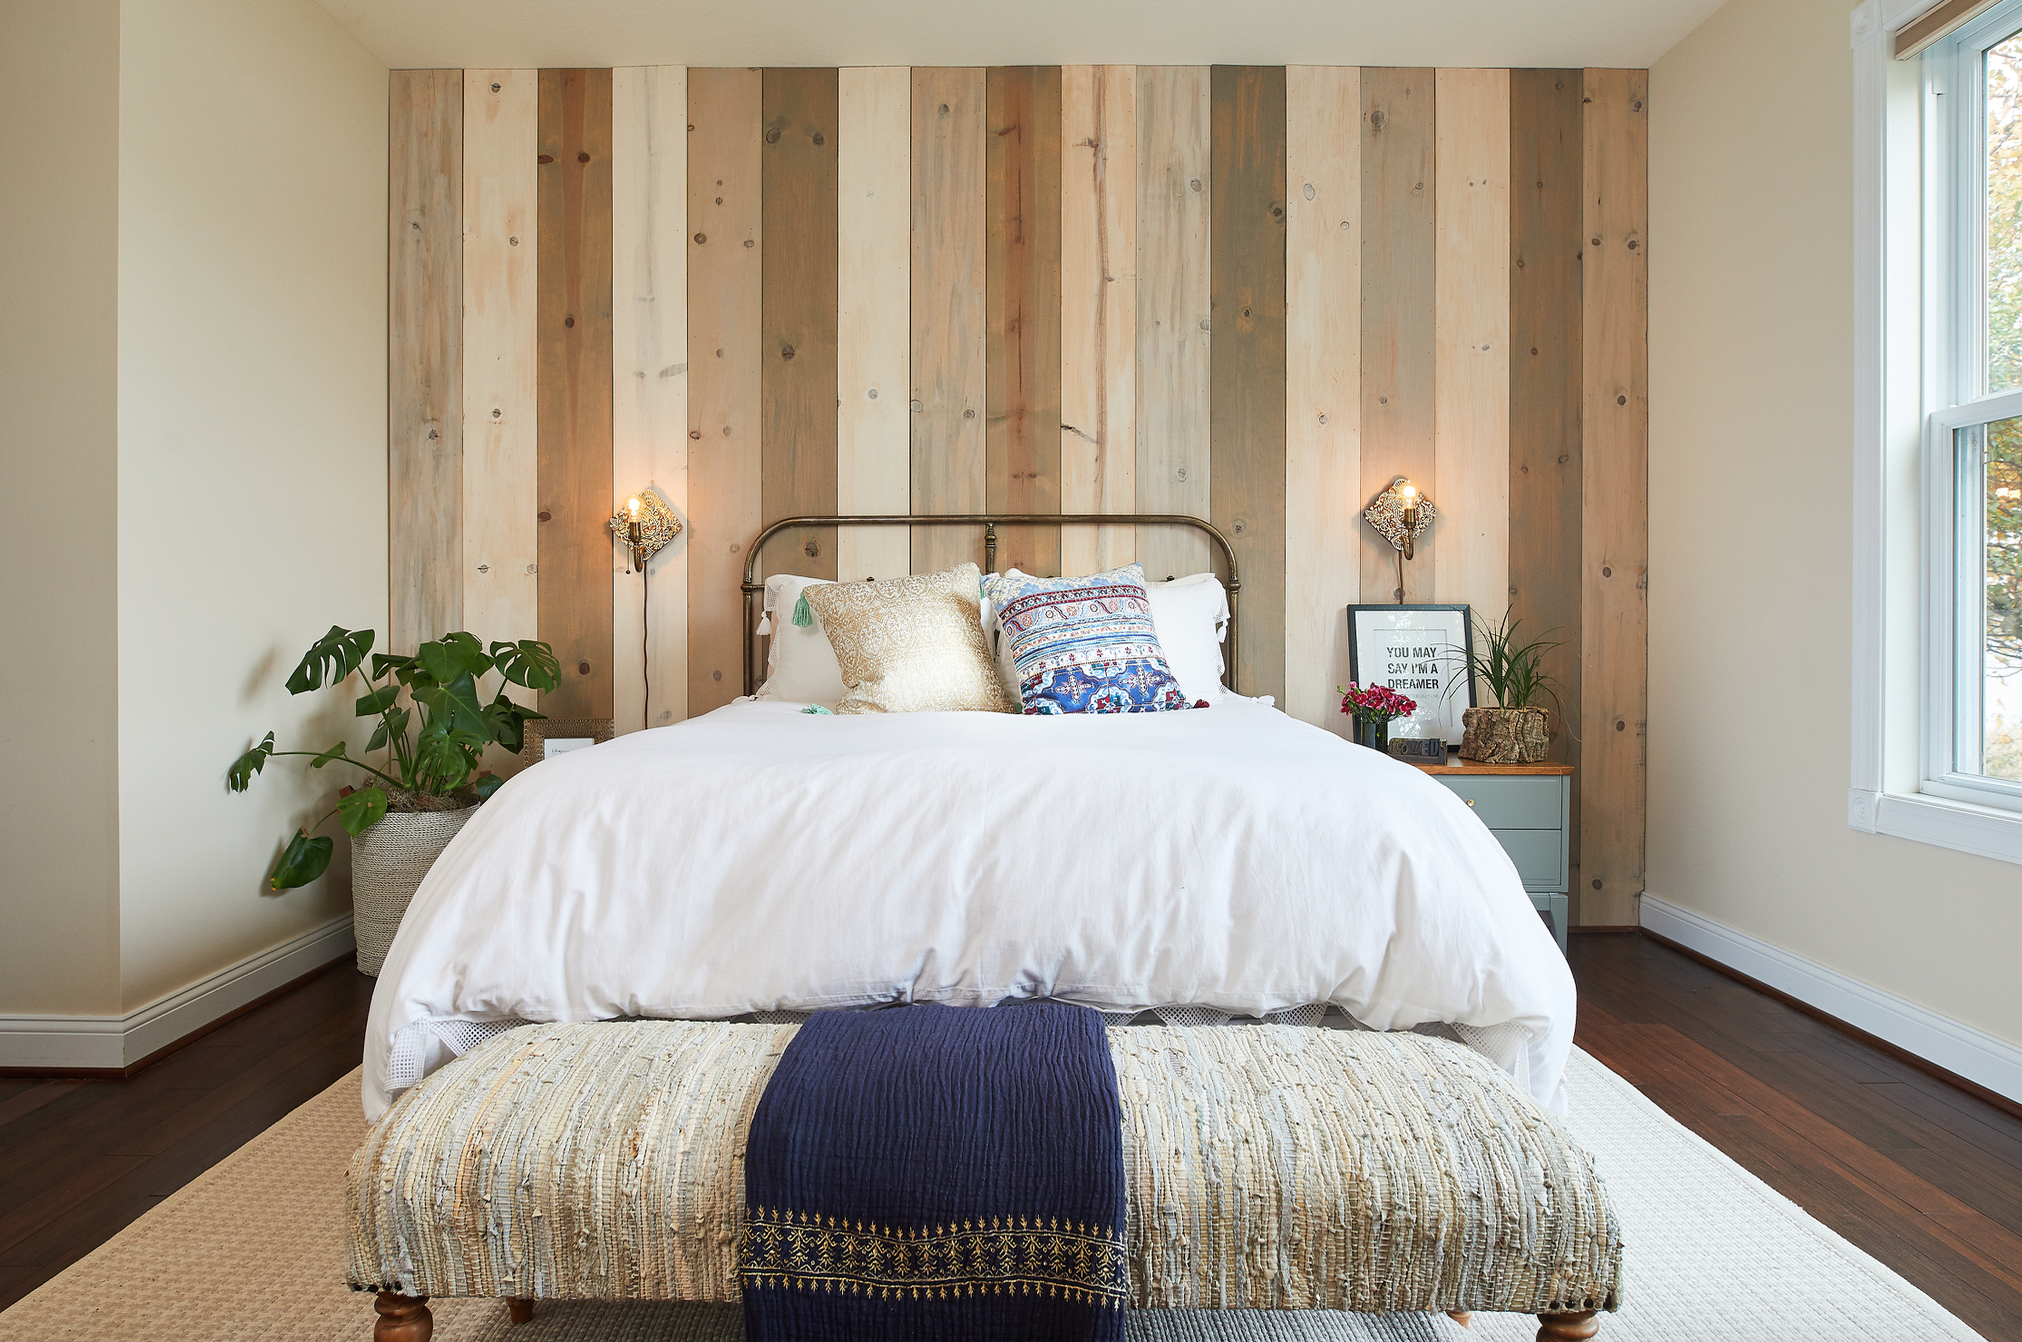 Creating Coastal Rustic Vibes In Our Master Bedroom With A Wood Wall Life Unfolding